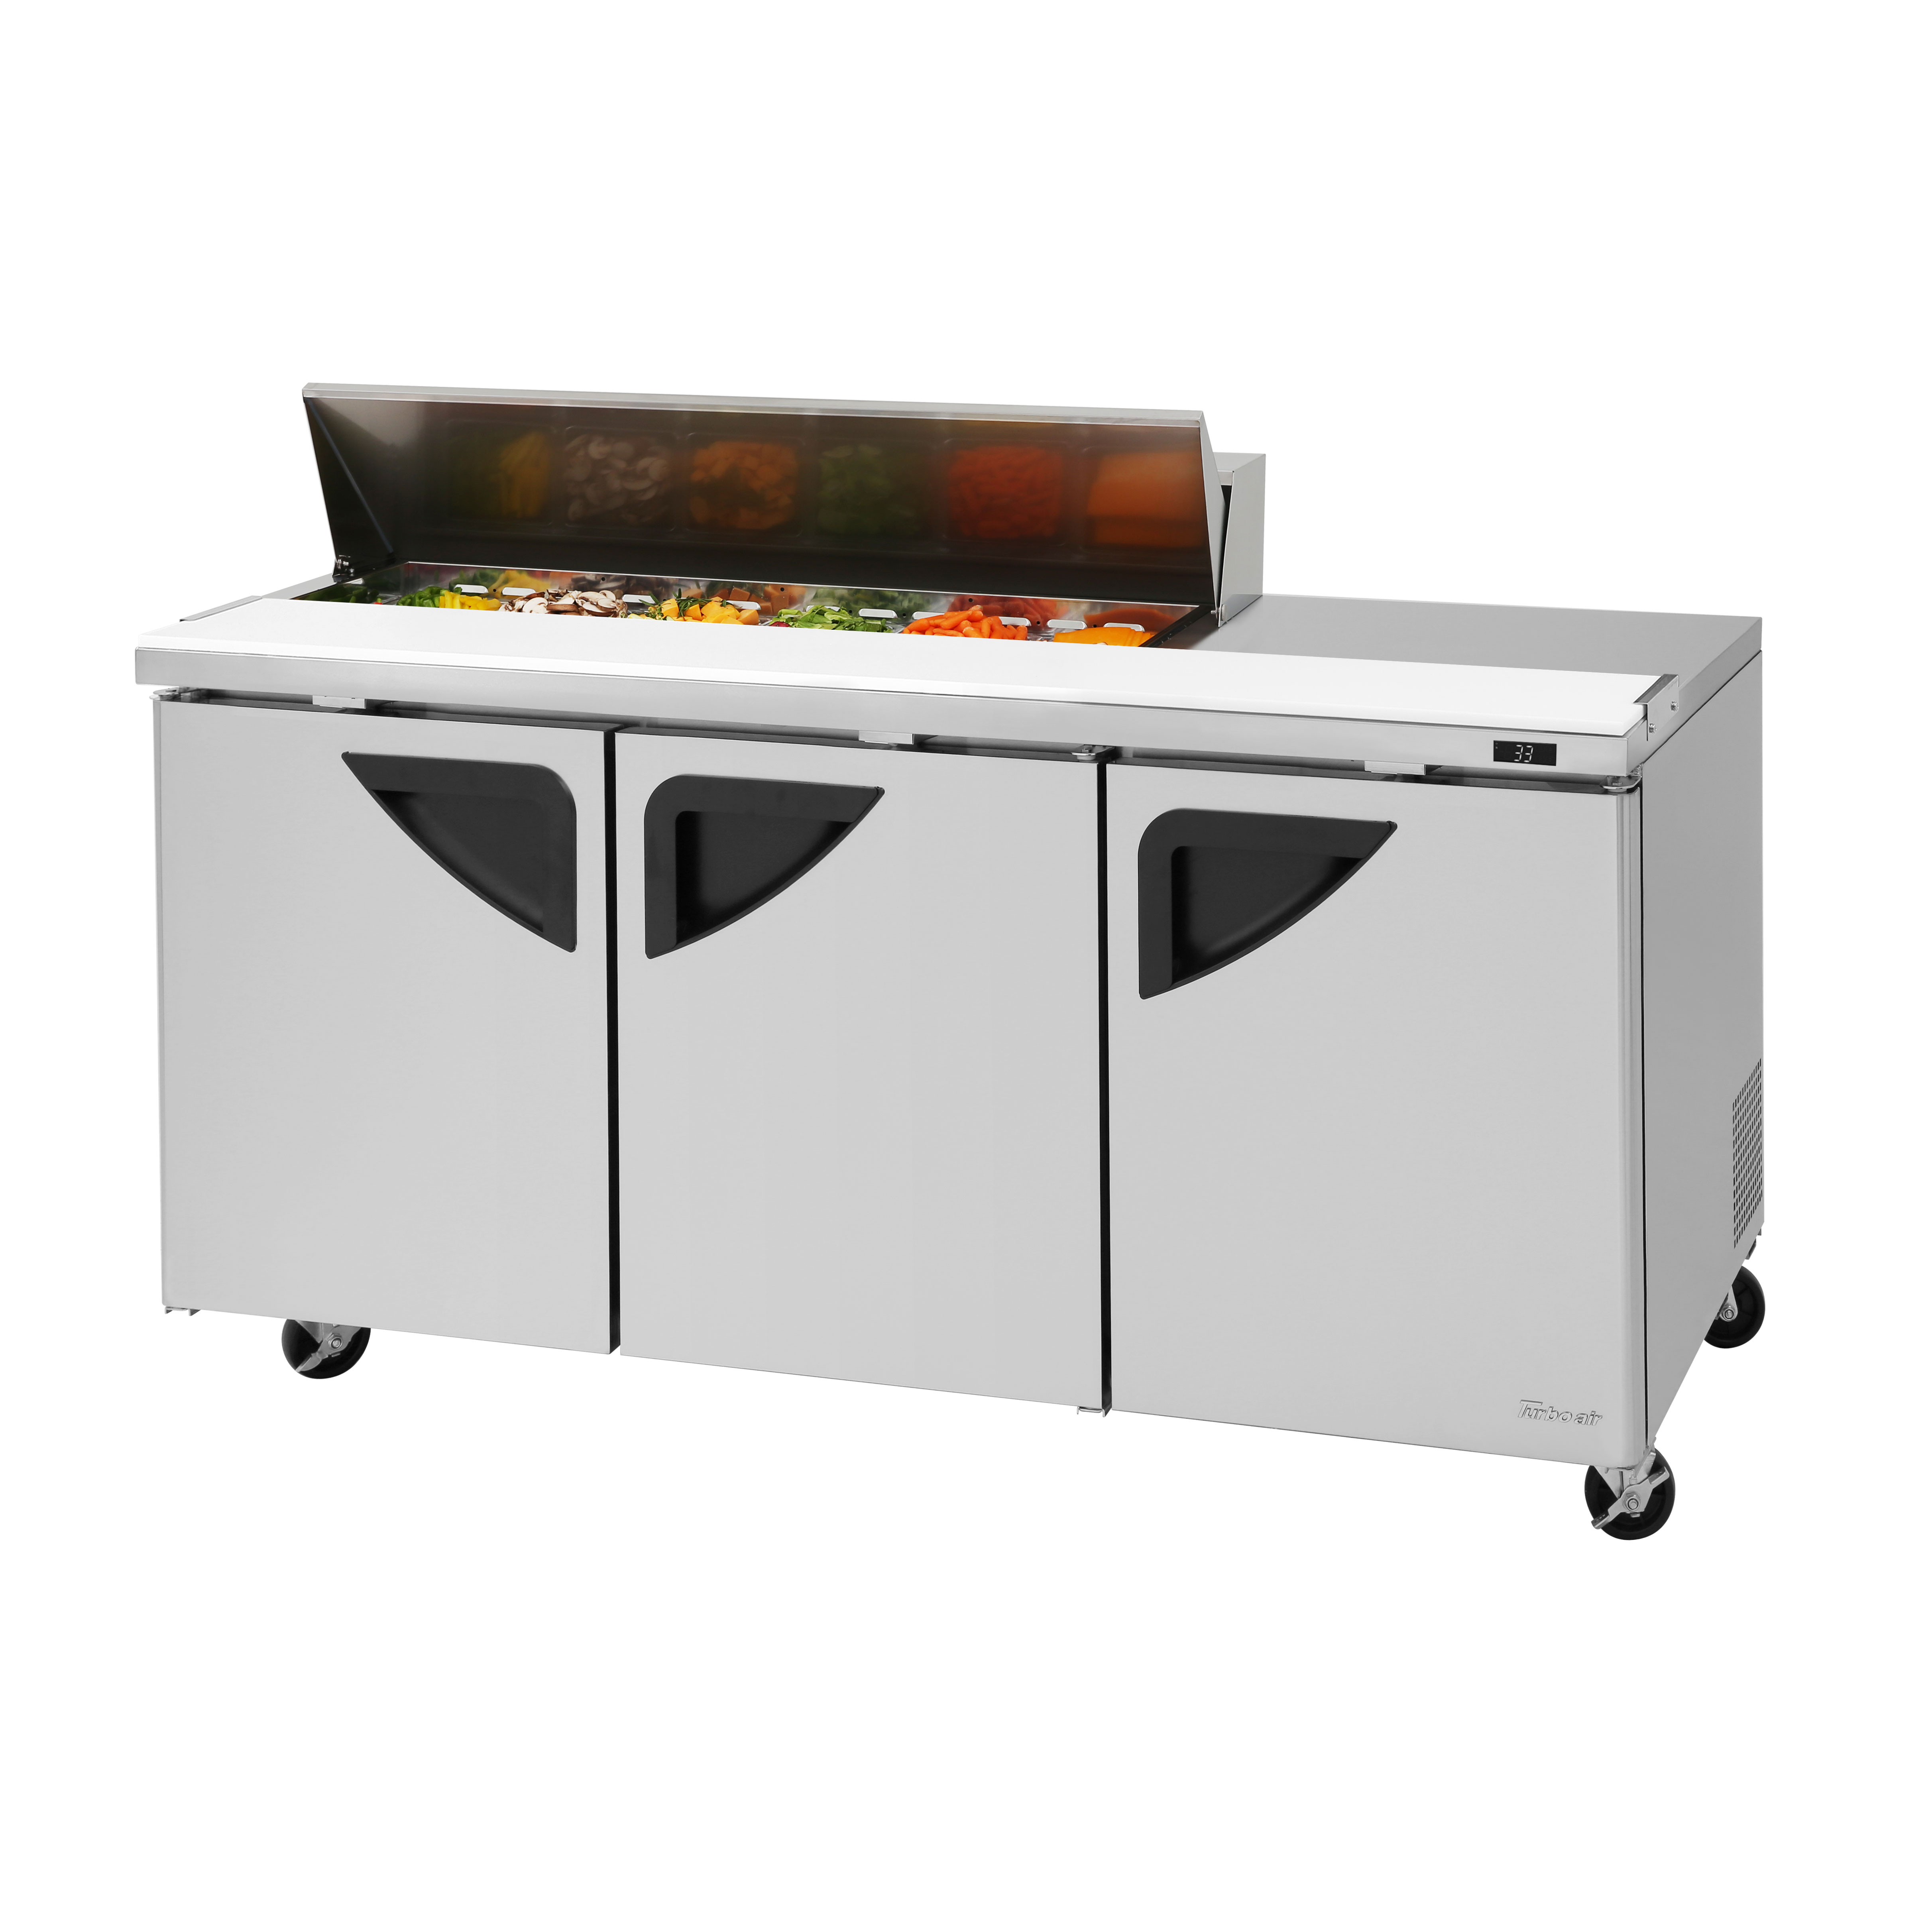 Turbo Air TST-72SD-12S-N refrigerated counter, sandwich / salad unit